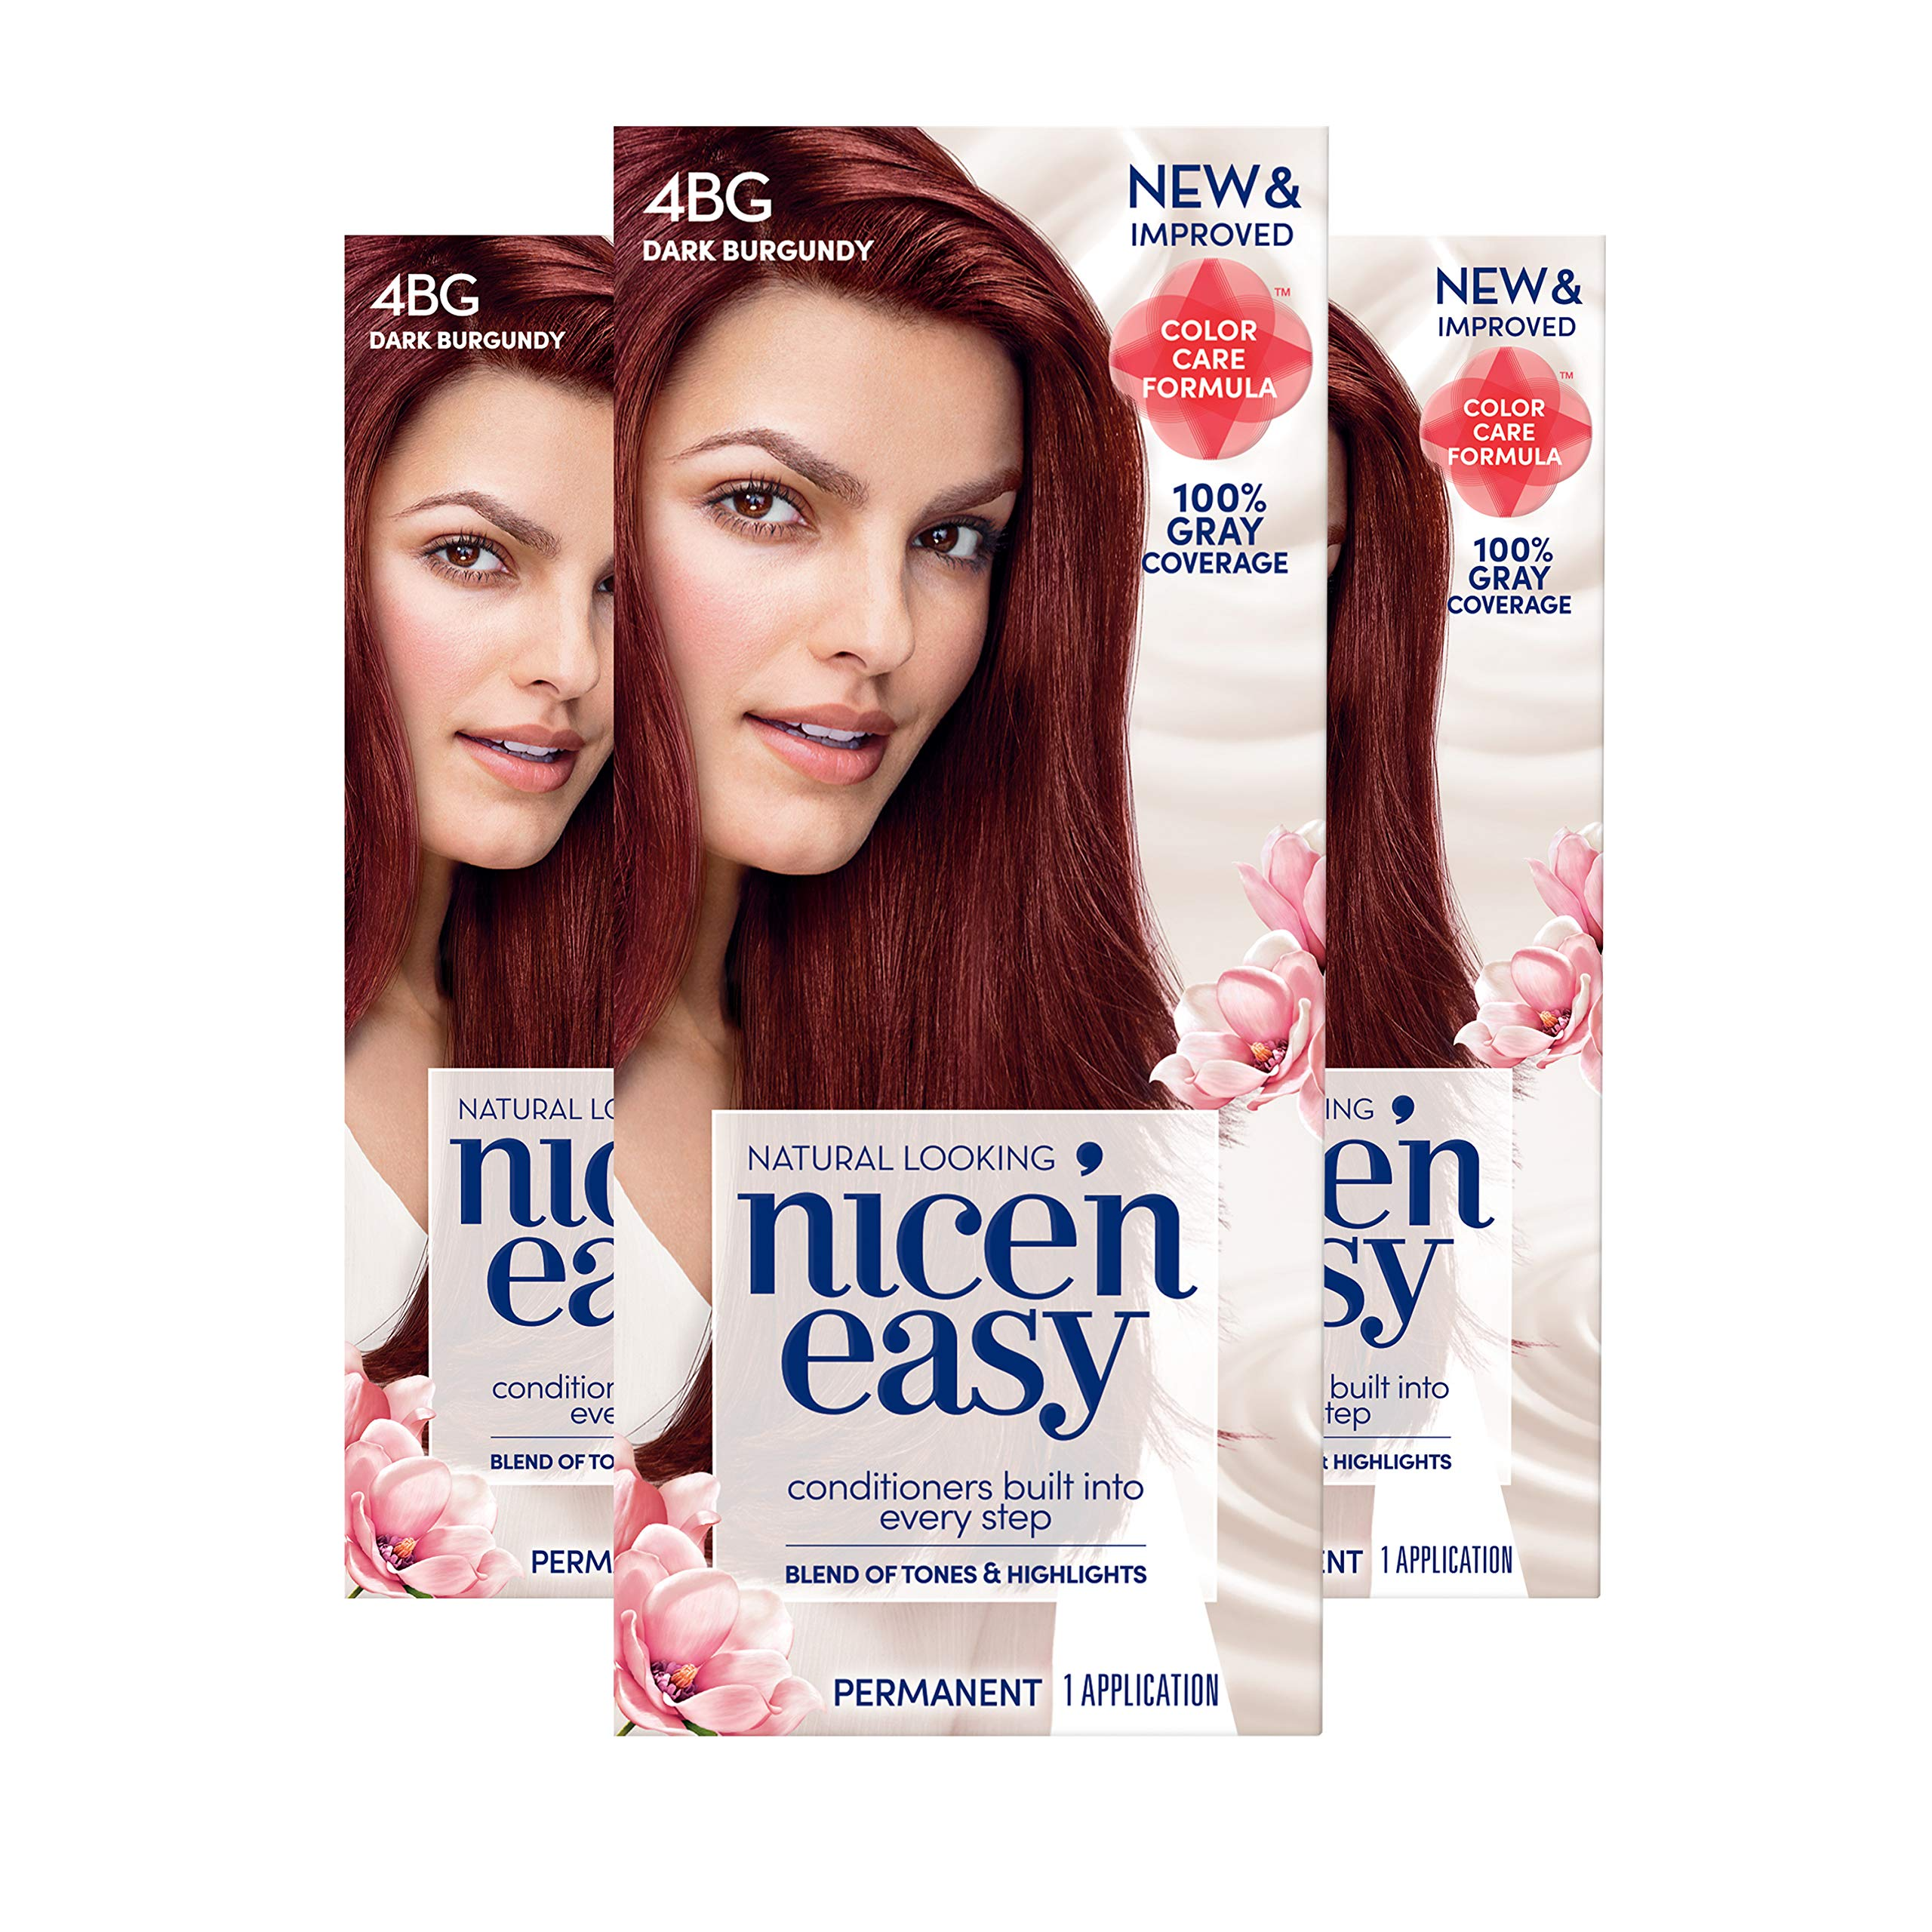 Clairol Nice 'n Easy Permanent Hair Color, 4BG Natural Dark Burgundy, 3 Count, Reds (Packaging May Vary) by Clairol